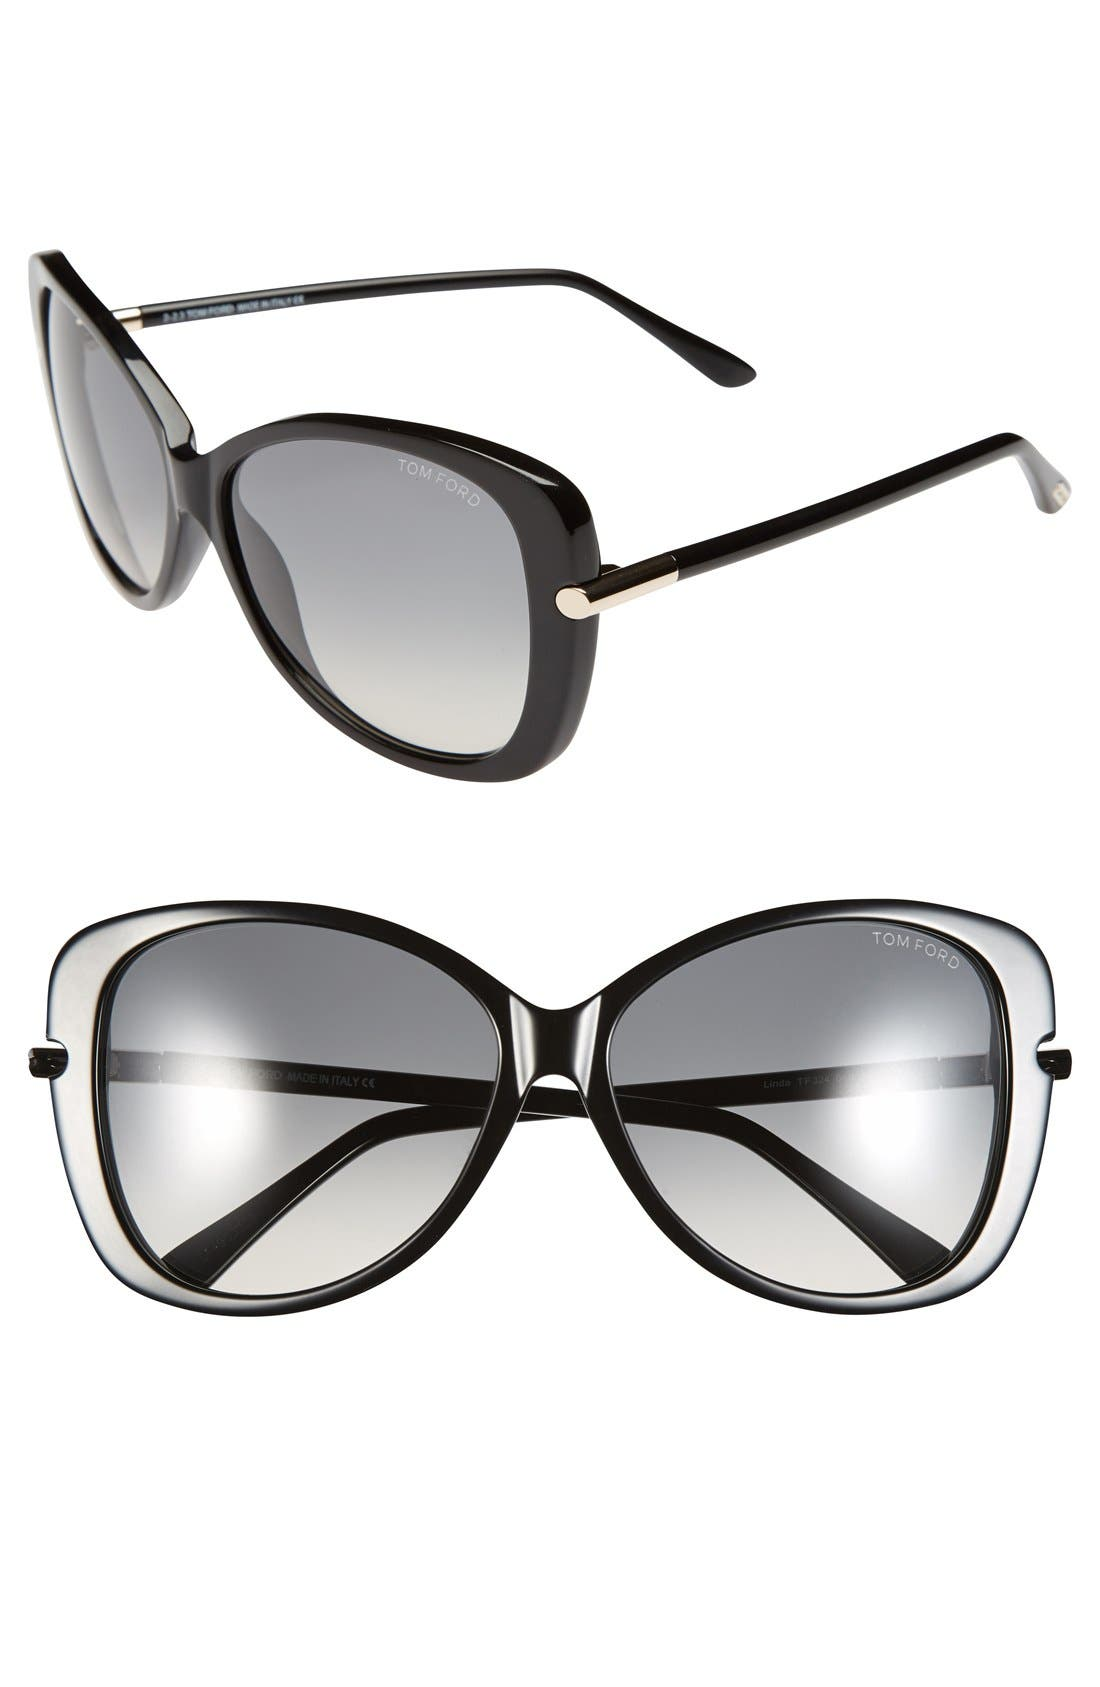 Main Image - Tom Ford 'Linda' 59mm Sunglasses